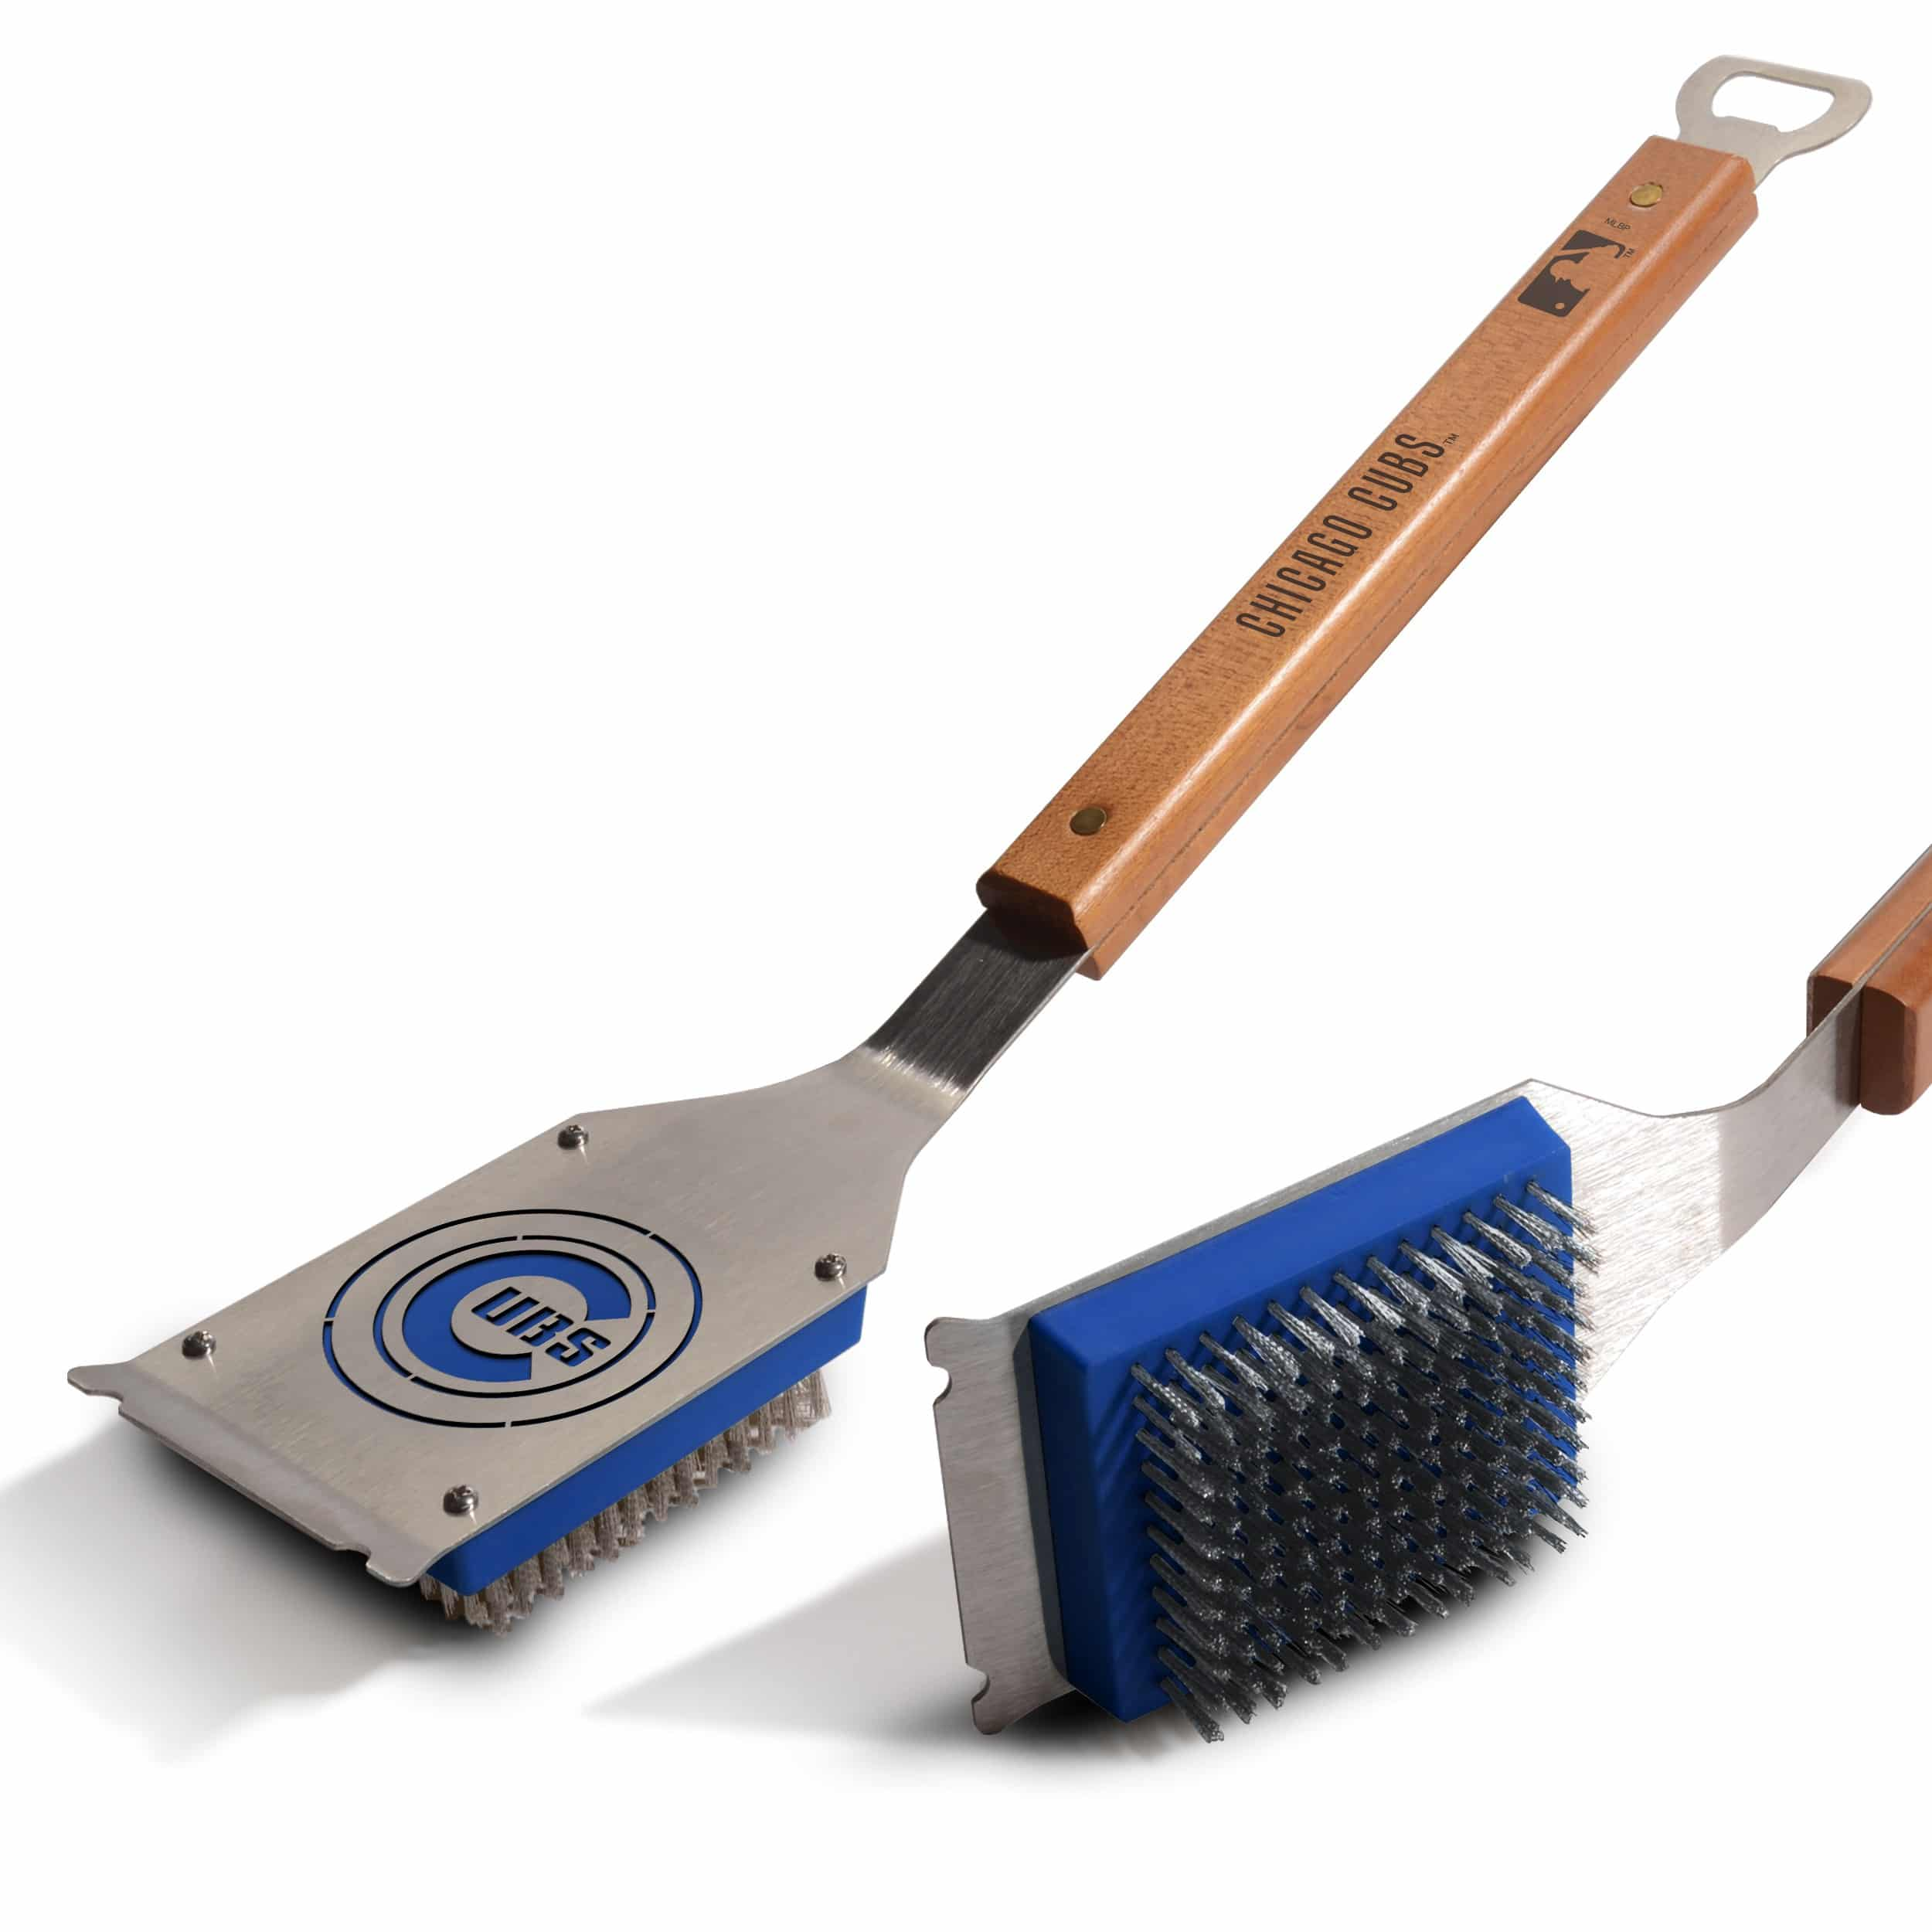 The Sportula Products, Chigago Cubs Grill Brush